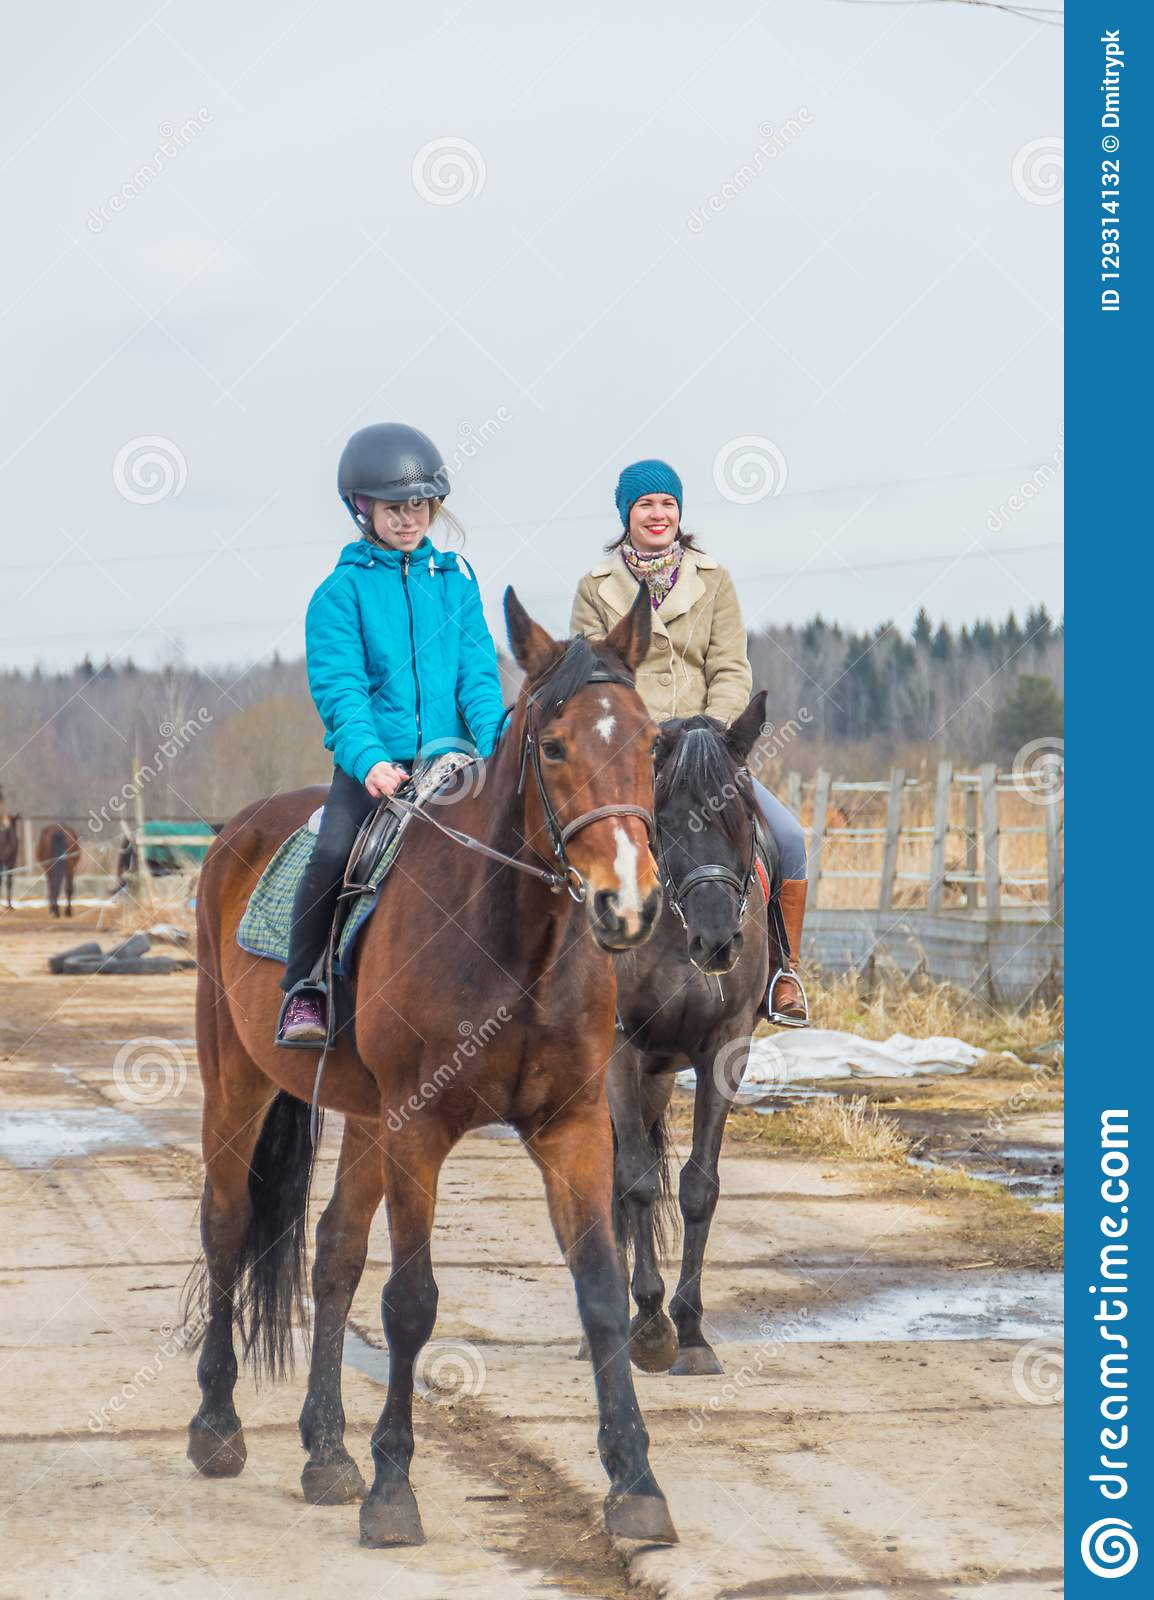 Russia Leningrad Region Nikolskoye March 25 2017 At The Stable Horse Riding Girls Editorial Photography Image Of Brown Green 129314132